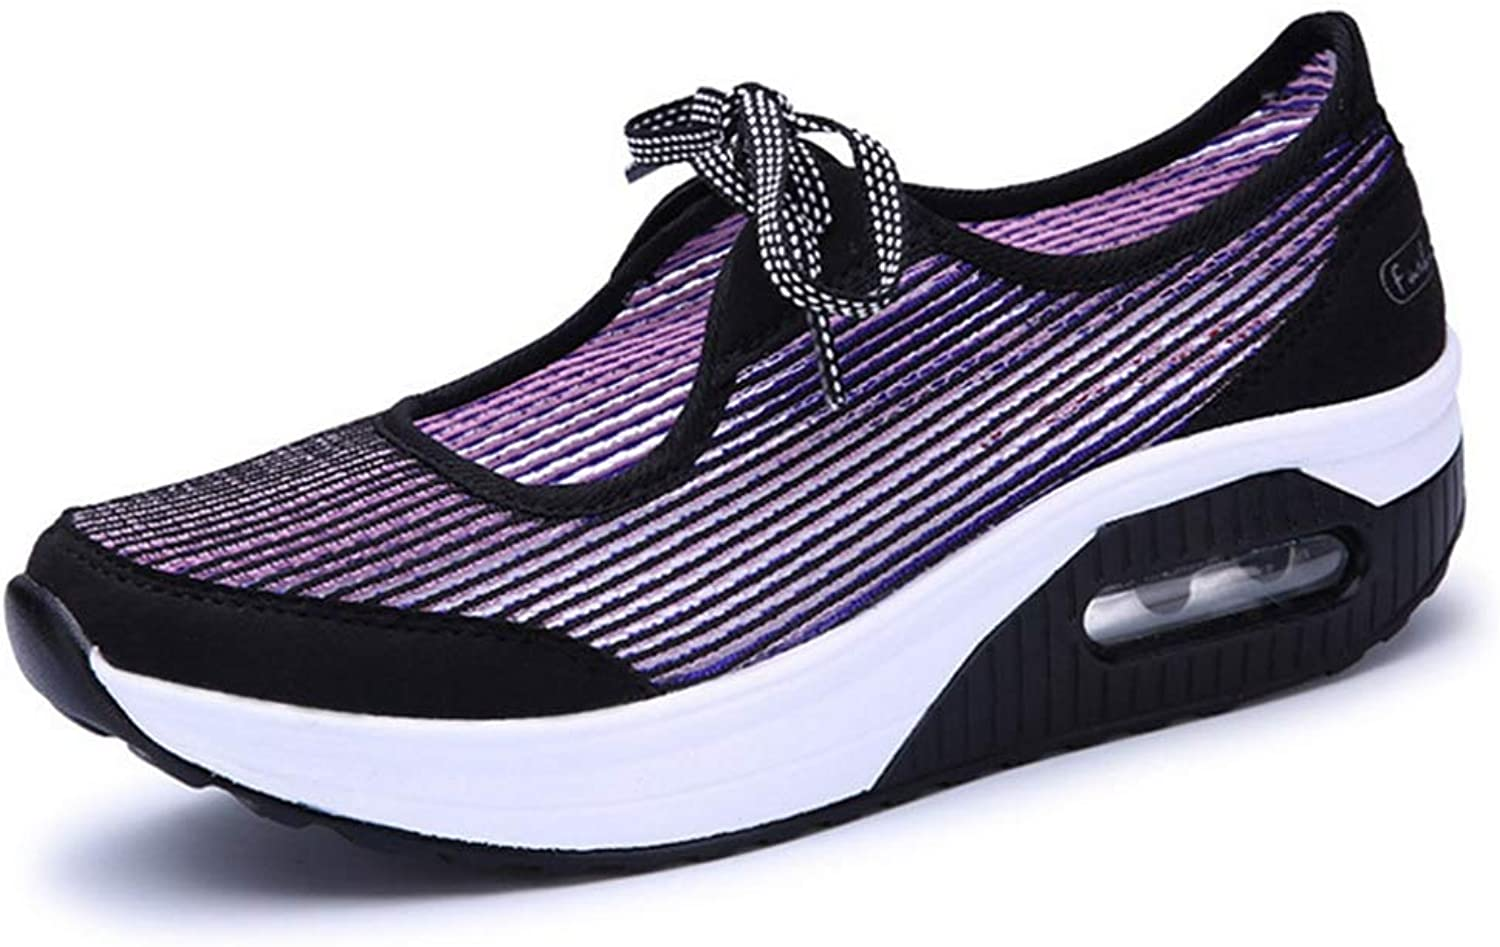 T-JULY Women Air Mesh Lace-up Platform Wedges Casual shoes Ladies Spring Summer High Heel Sneakers